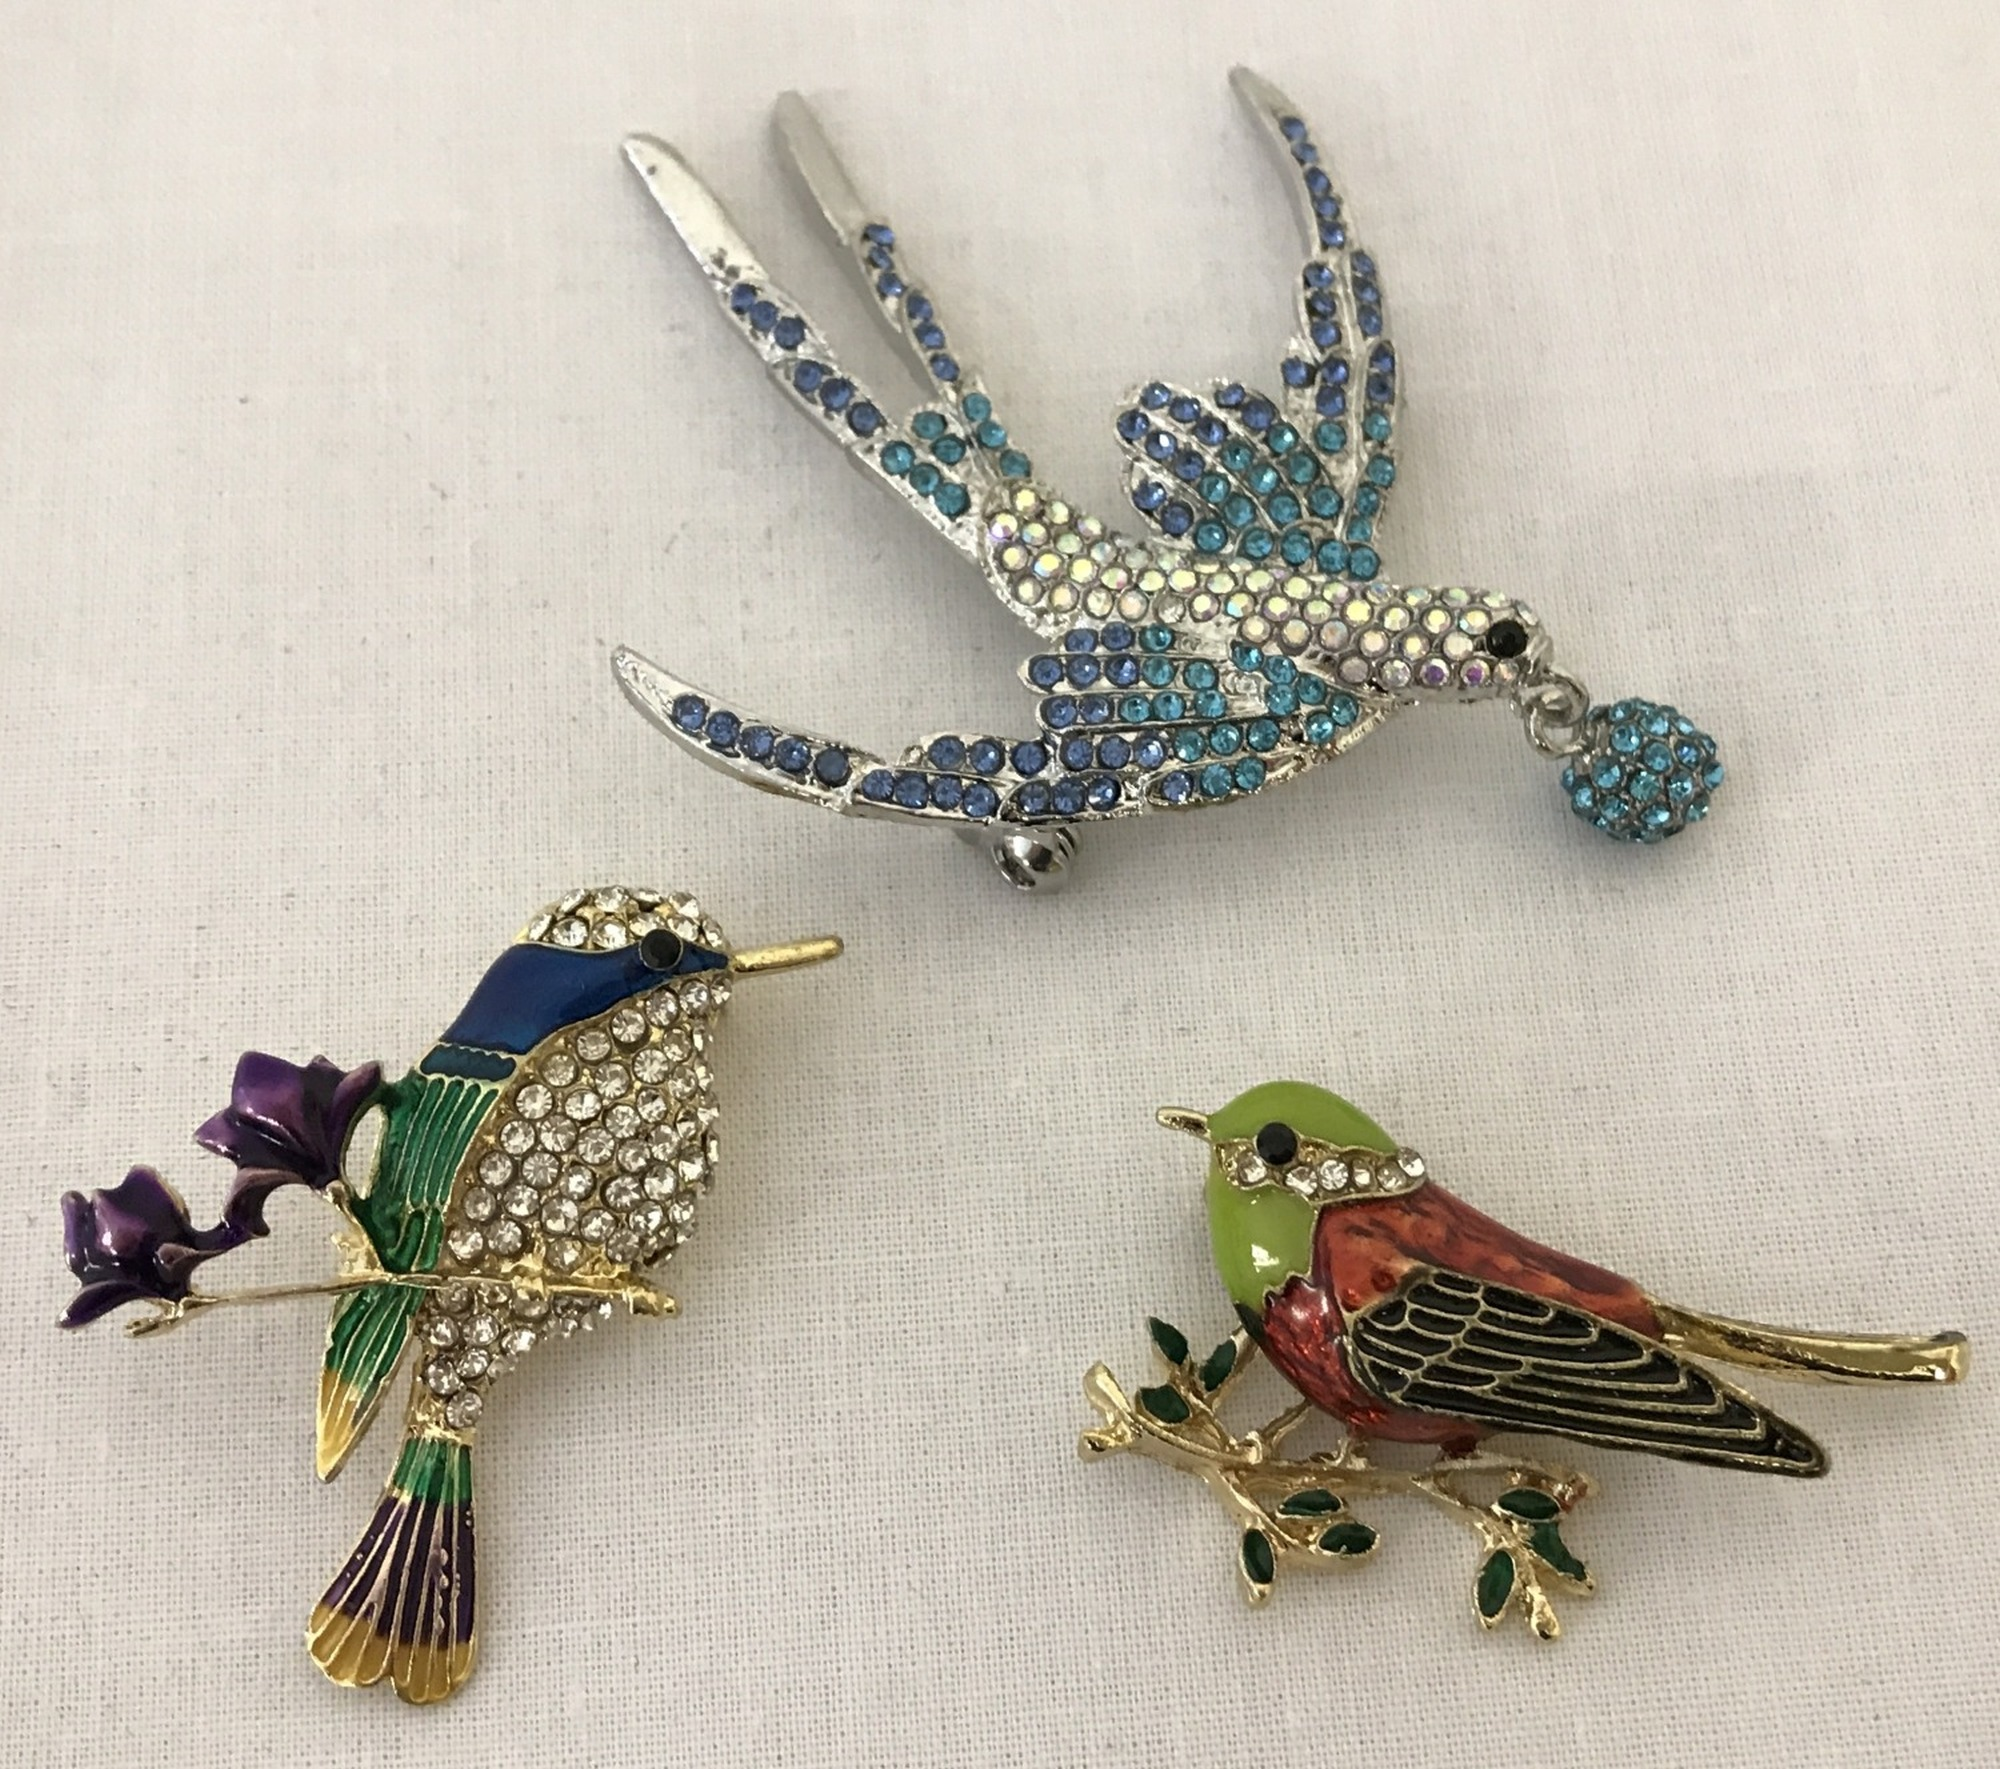 3 costume jewellery enamelled and stone set brooches in the shape of birds.